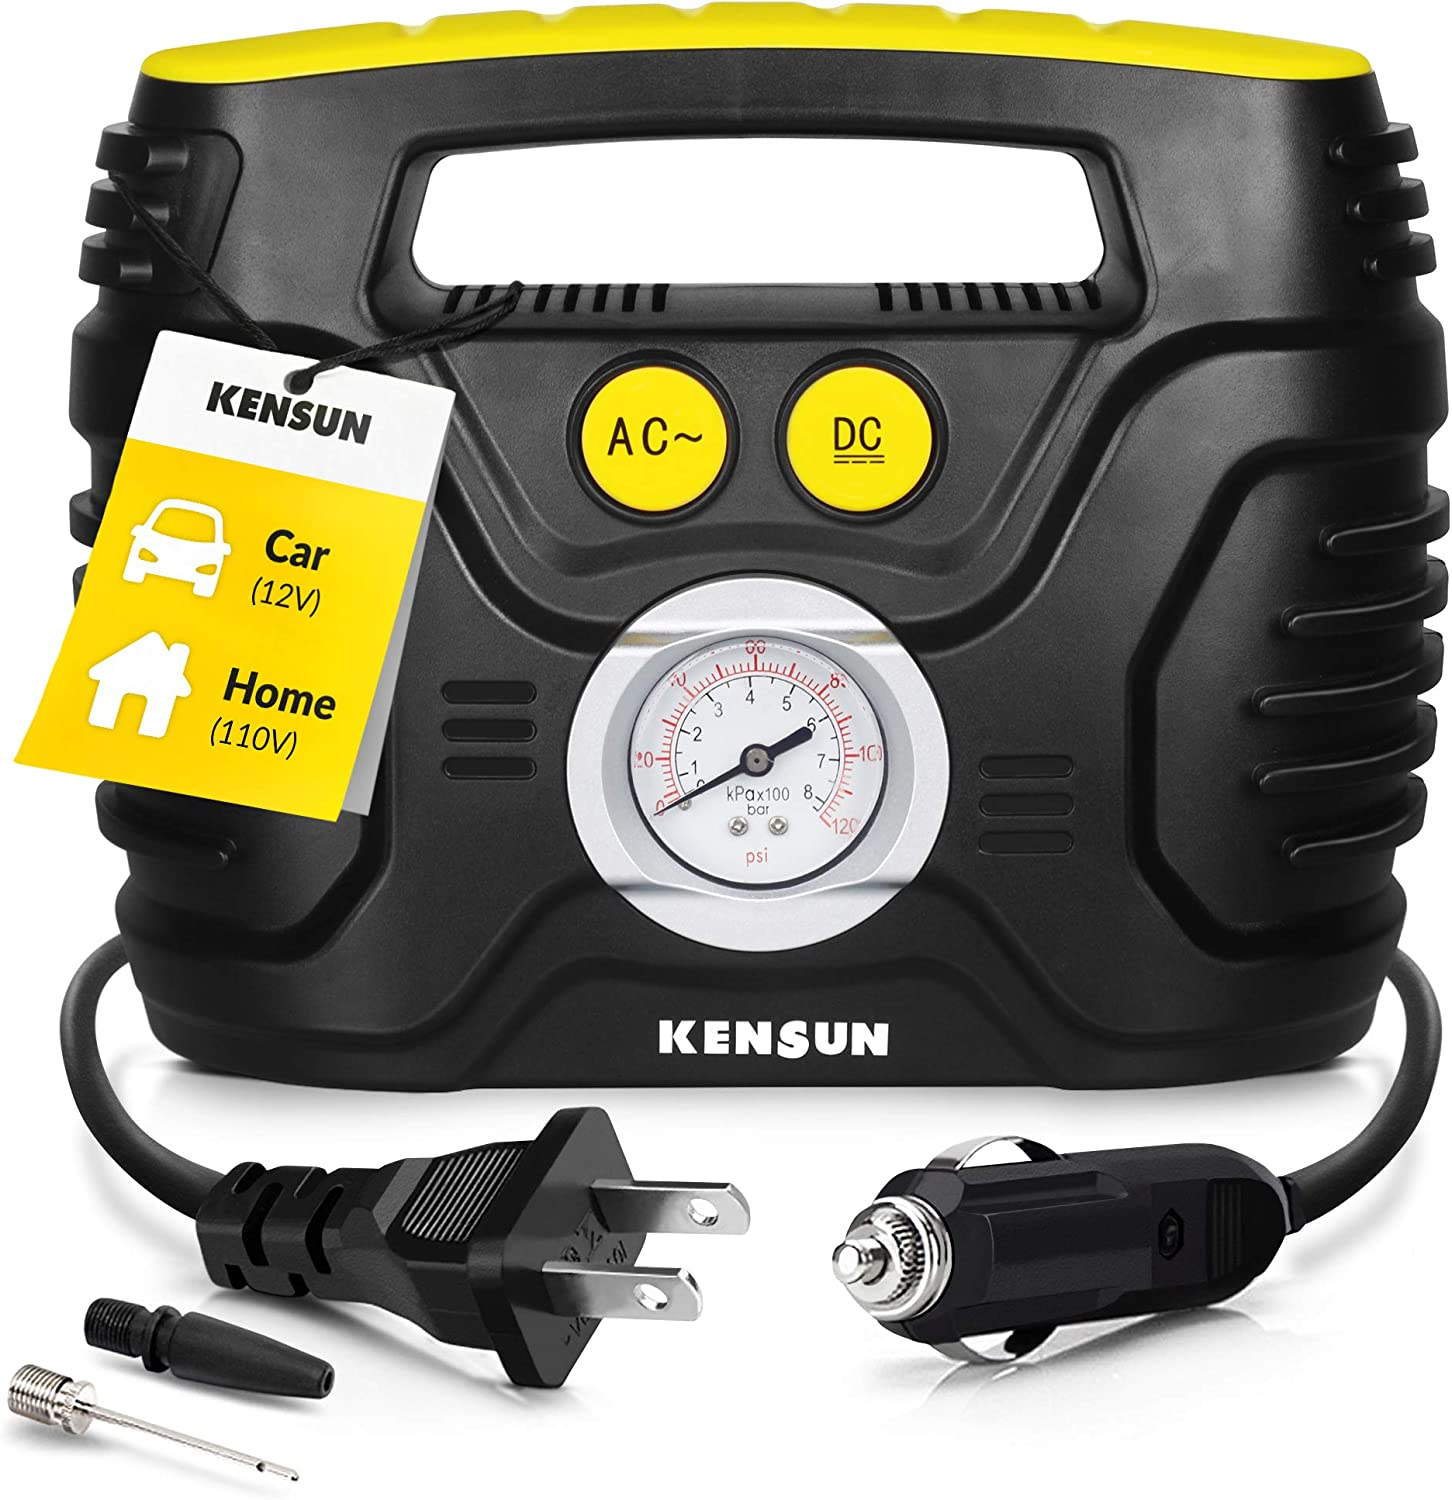 Kensun Portable Air Compressor Pump for Car 12V DC and Home 110V AC Swift Performance Tire Inflator 100 PSI